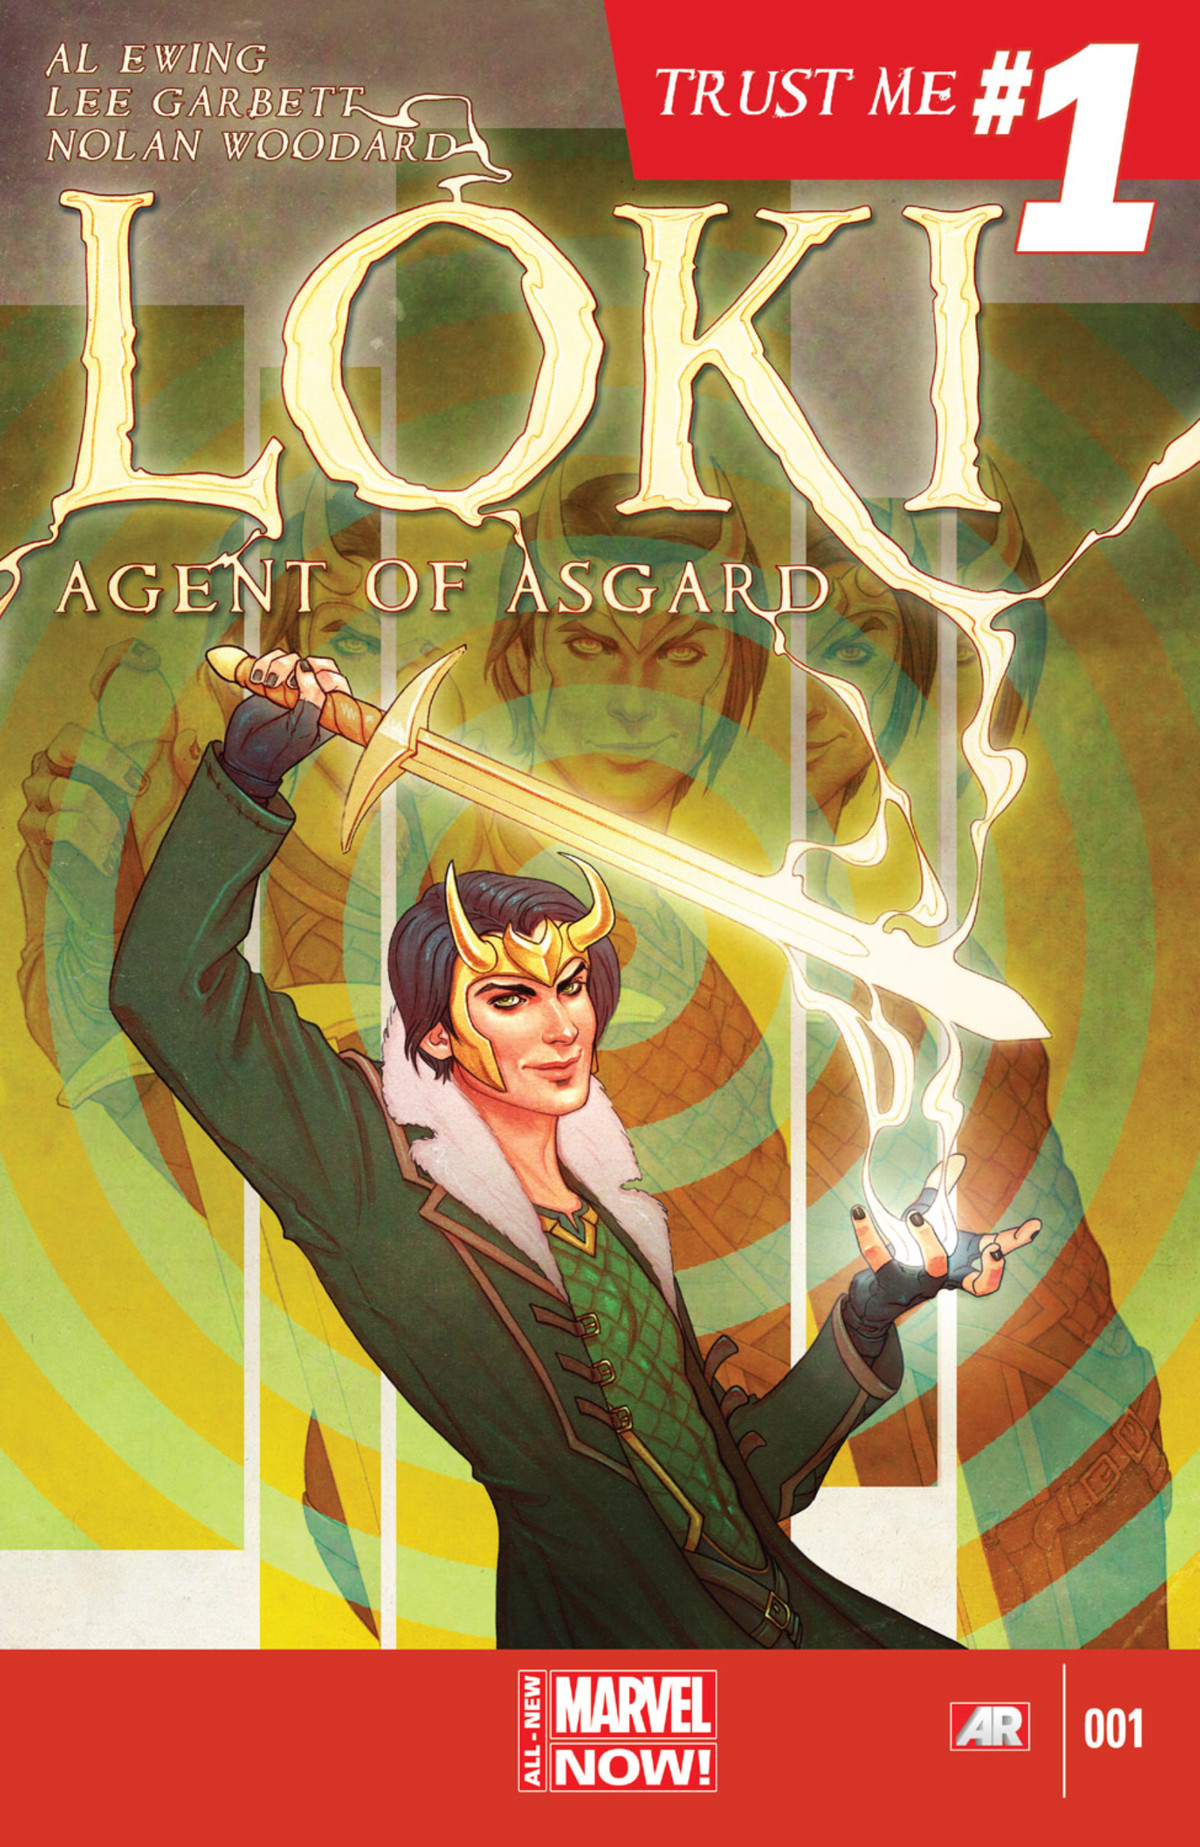 Loki charges a sword with magic, somehow doing it with a disrespectful air, on the cover of Loki: Agent of Asgard #1, Marvel Comics (2014).